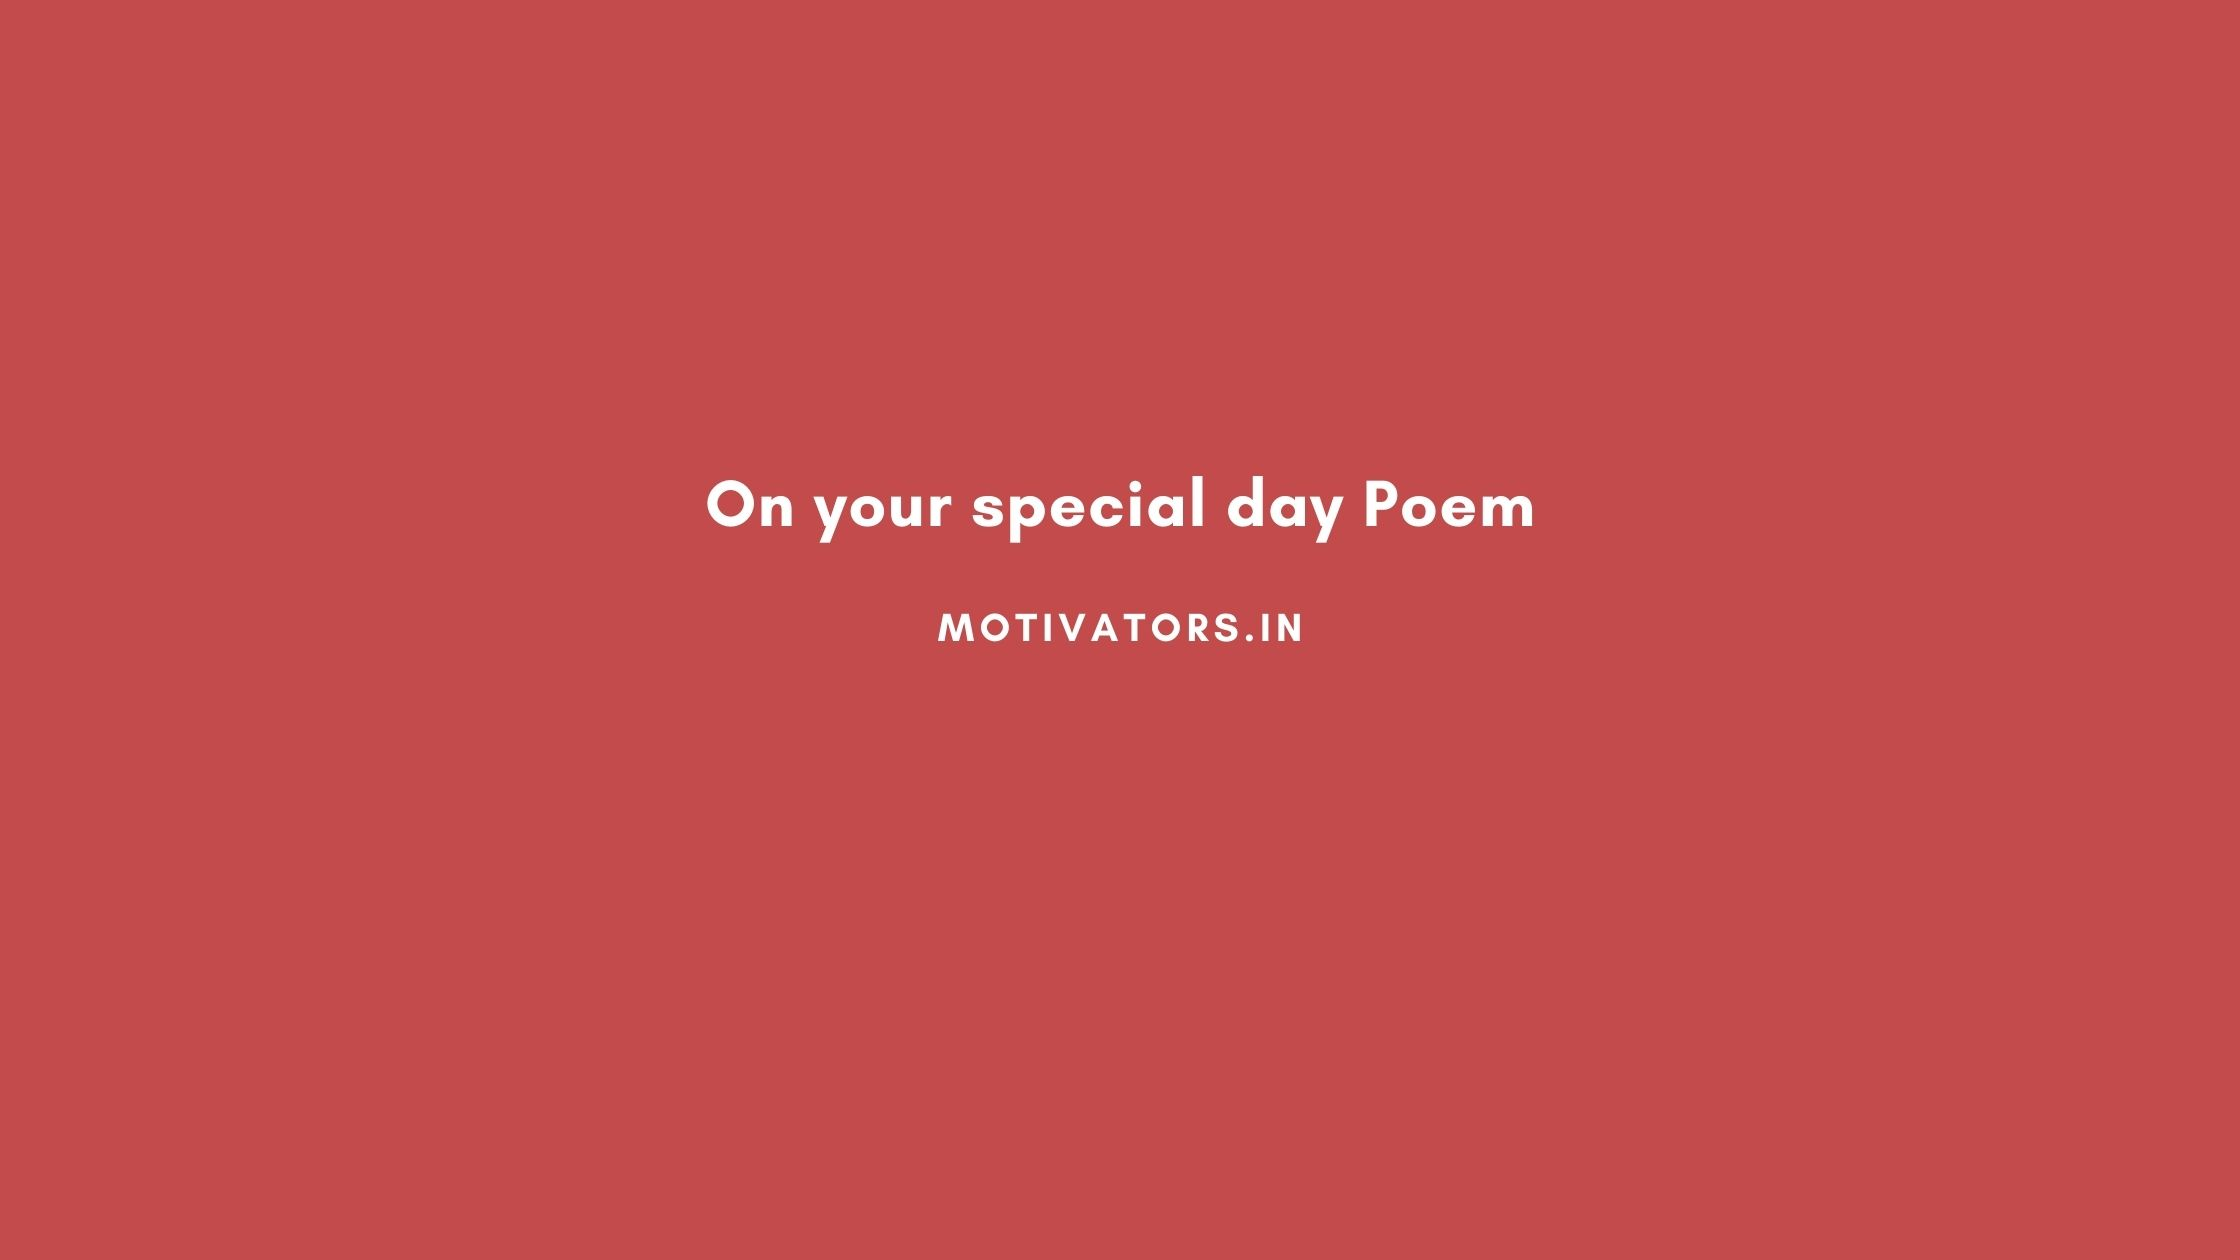 On your special day Poem